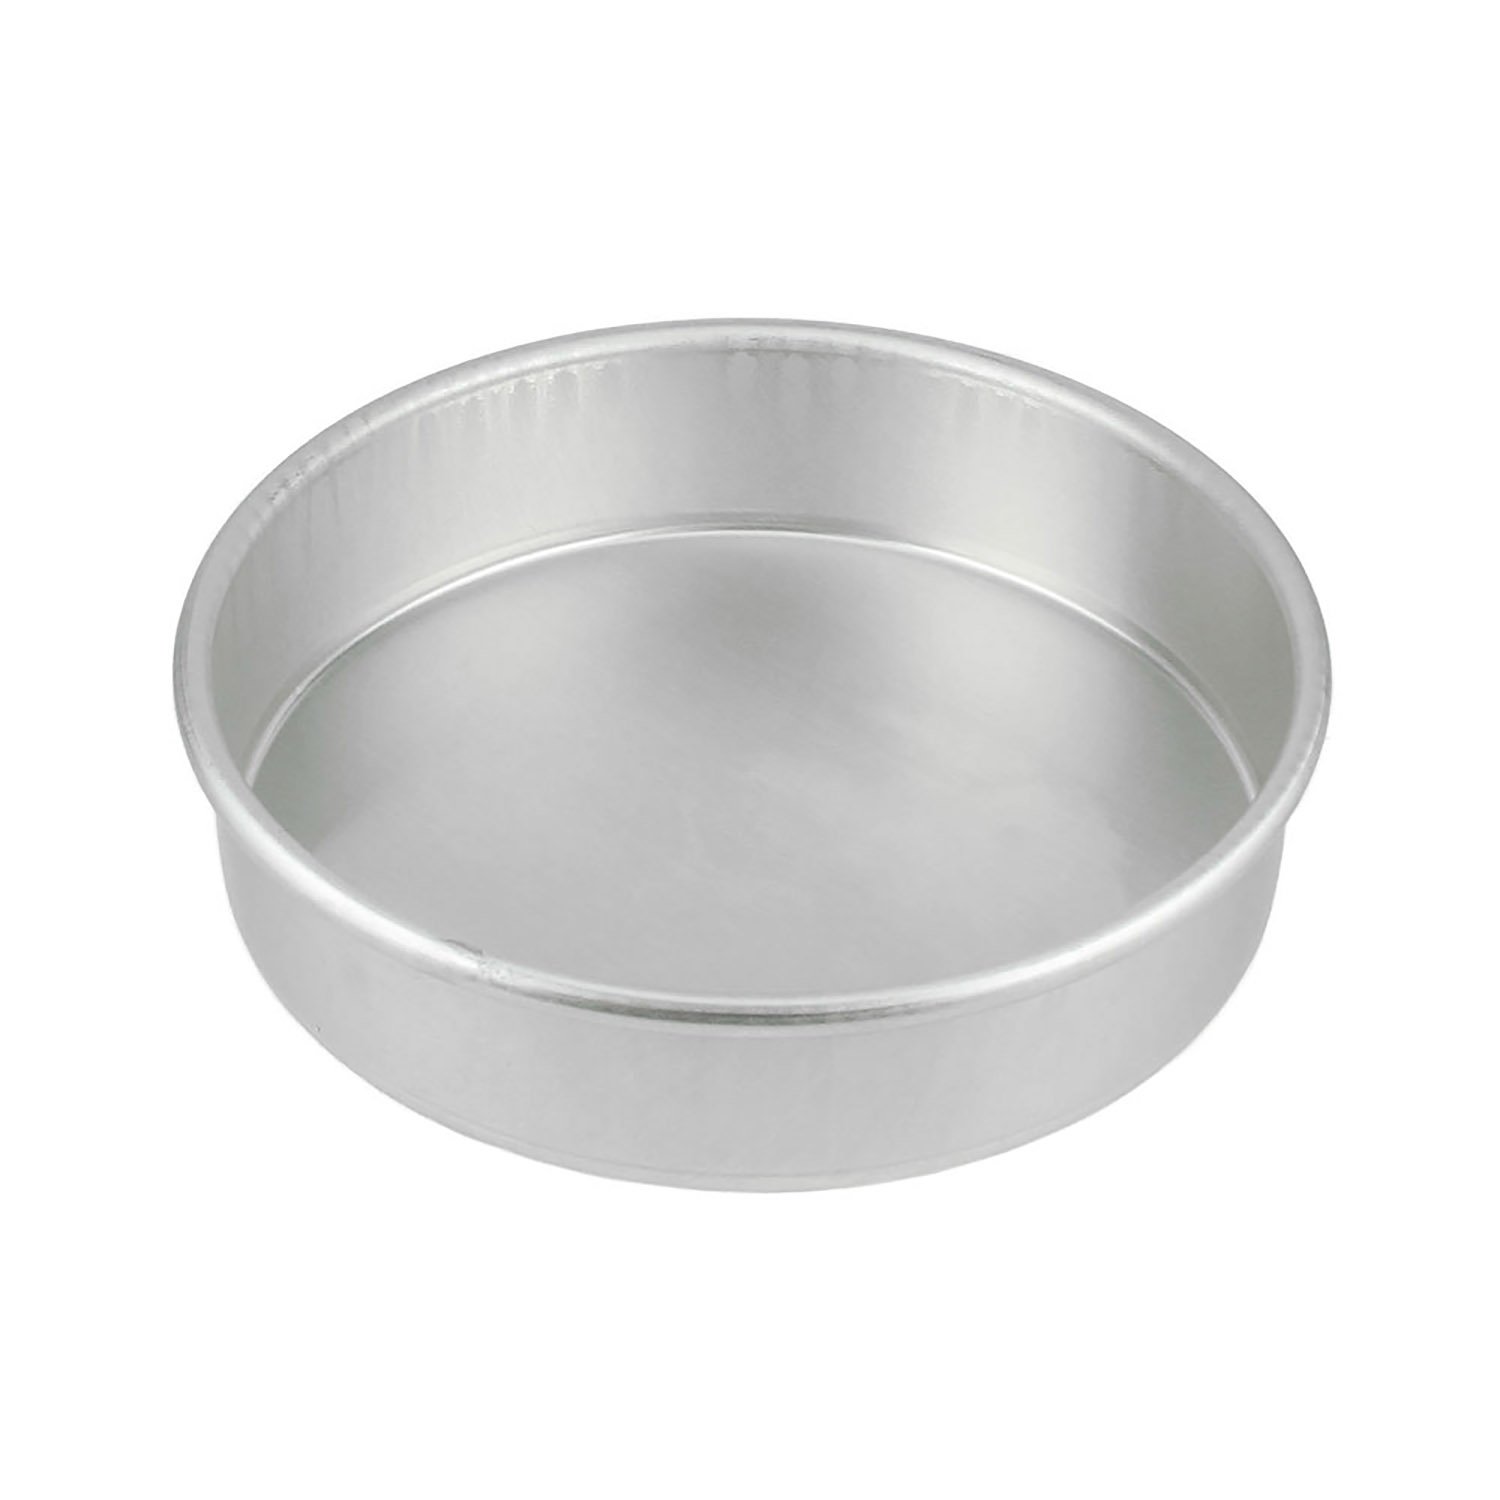 "8 x 2"" Magic Line Round Cake Pan"